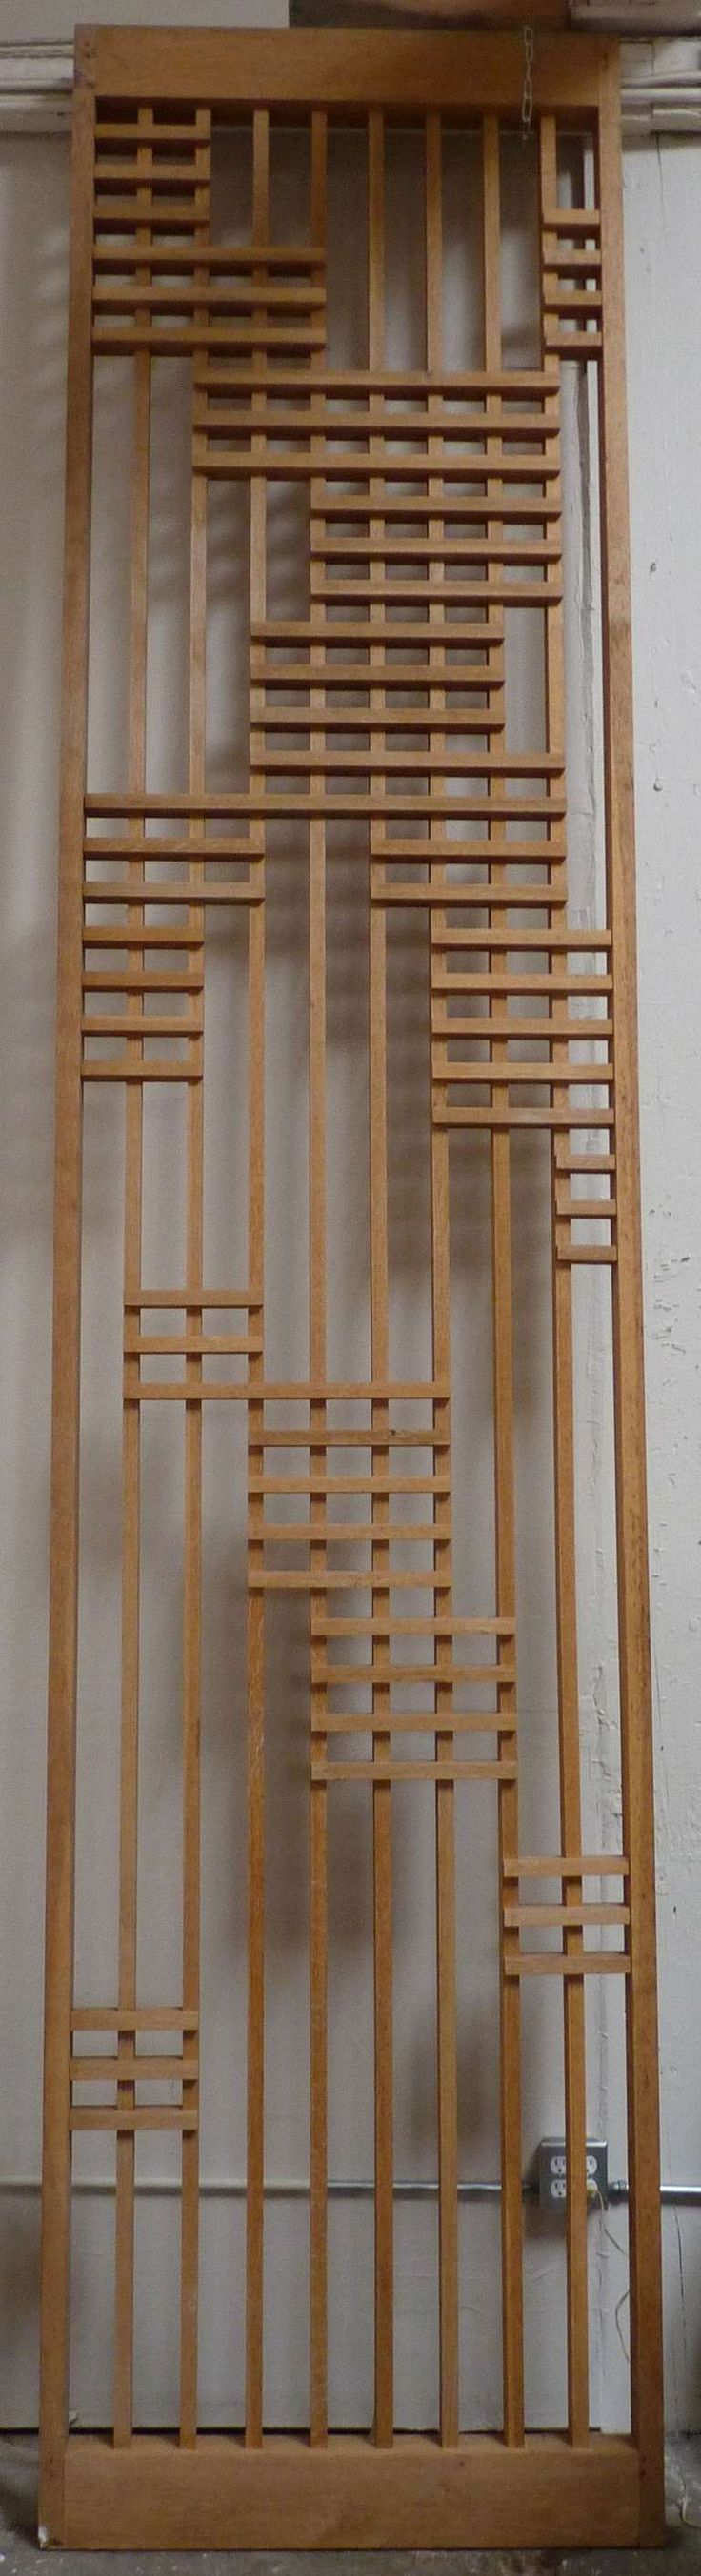 Pair of Monumental Architectural Screen Panels from a Modern San Diego Church   From a unique collection of antique and modern architectural elements at http://www.1stdibs.com/furniture/building-garden/architectural-elements/